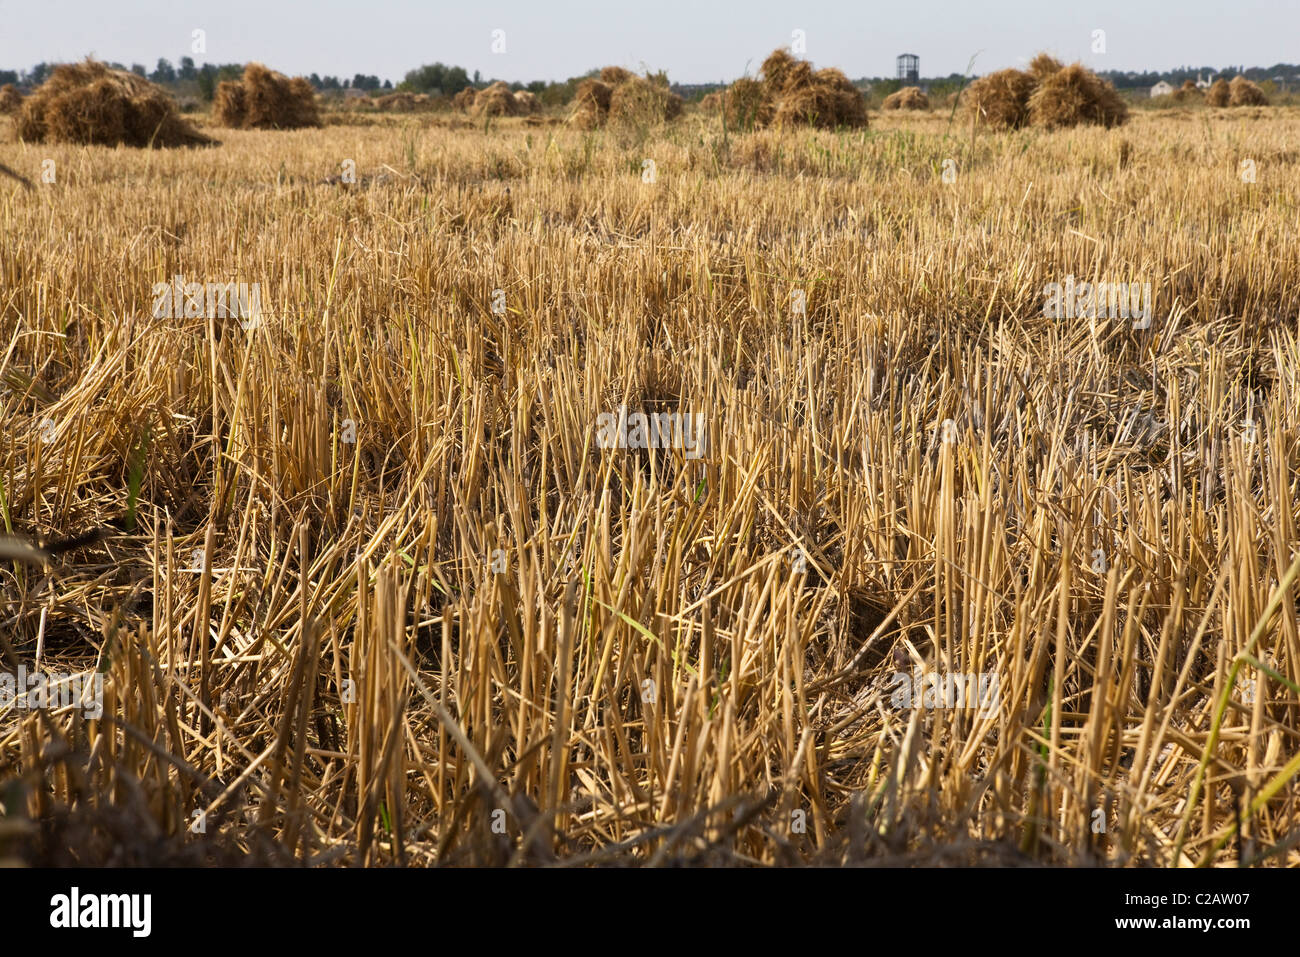 Harvested wheatfield - Stock Image